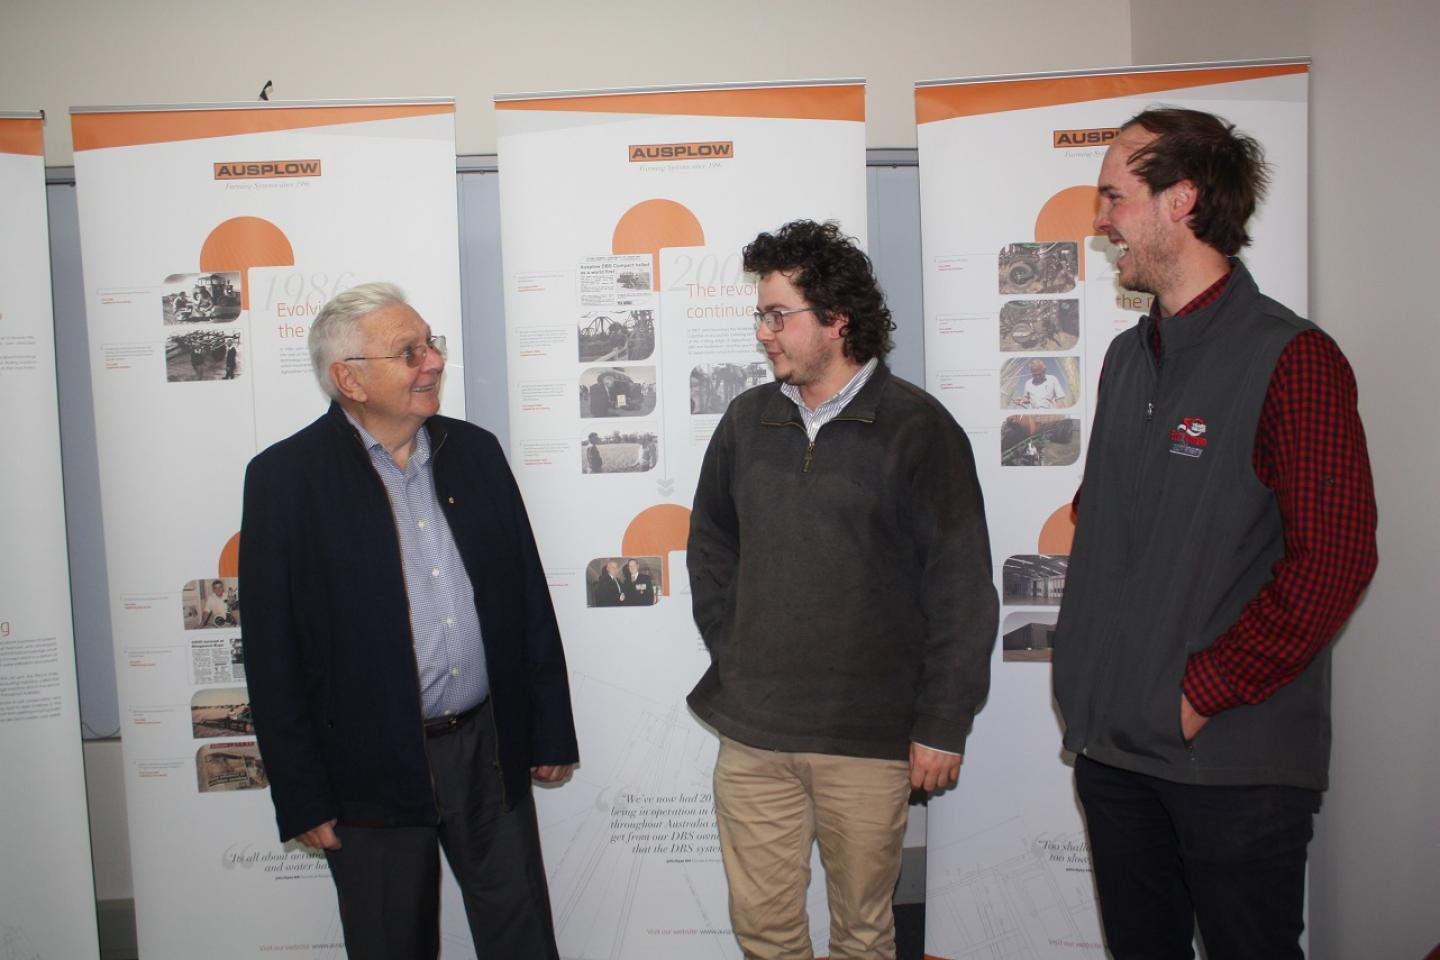 Wongan Hills dealership Boekeman Machinery toured Ausplow's Naval Base factory last month with Ausplow owners and prospective clients keen to hear the company's latest news. Here, company managing director and DBS inventor John Ryan (left) talks with Bindoon farmer Kristen Kelly and Boekeman Machinery salesman Ben Boekeman. Kristen has owned a 12.2 metre DBS for three years and picked up some handy information during the tour.